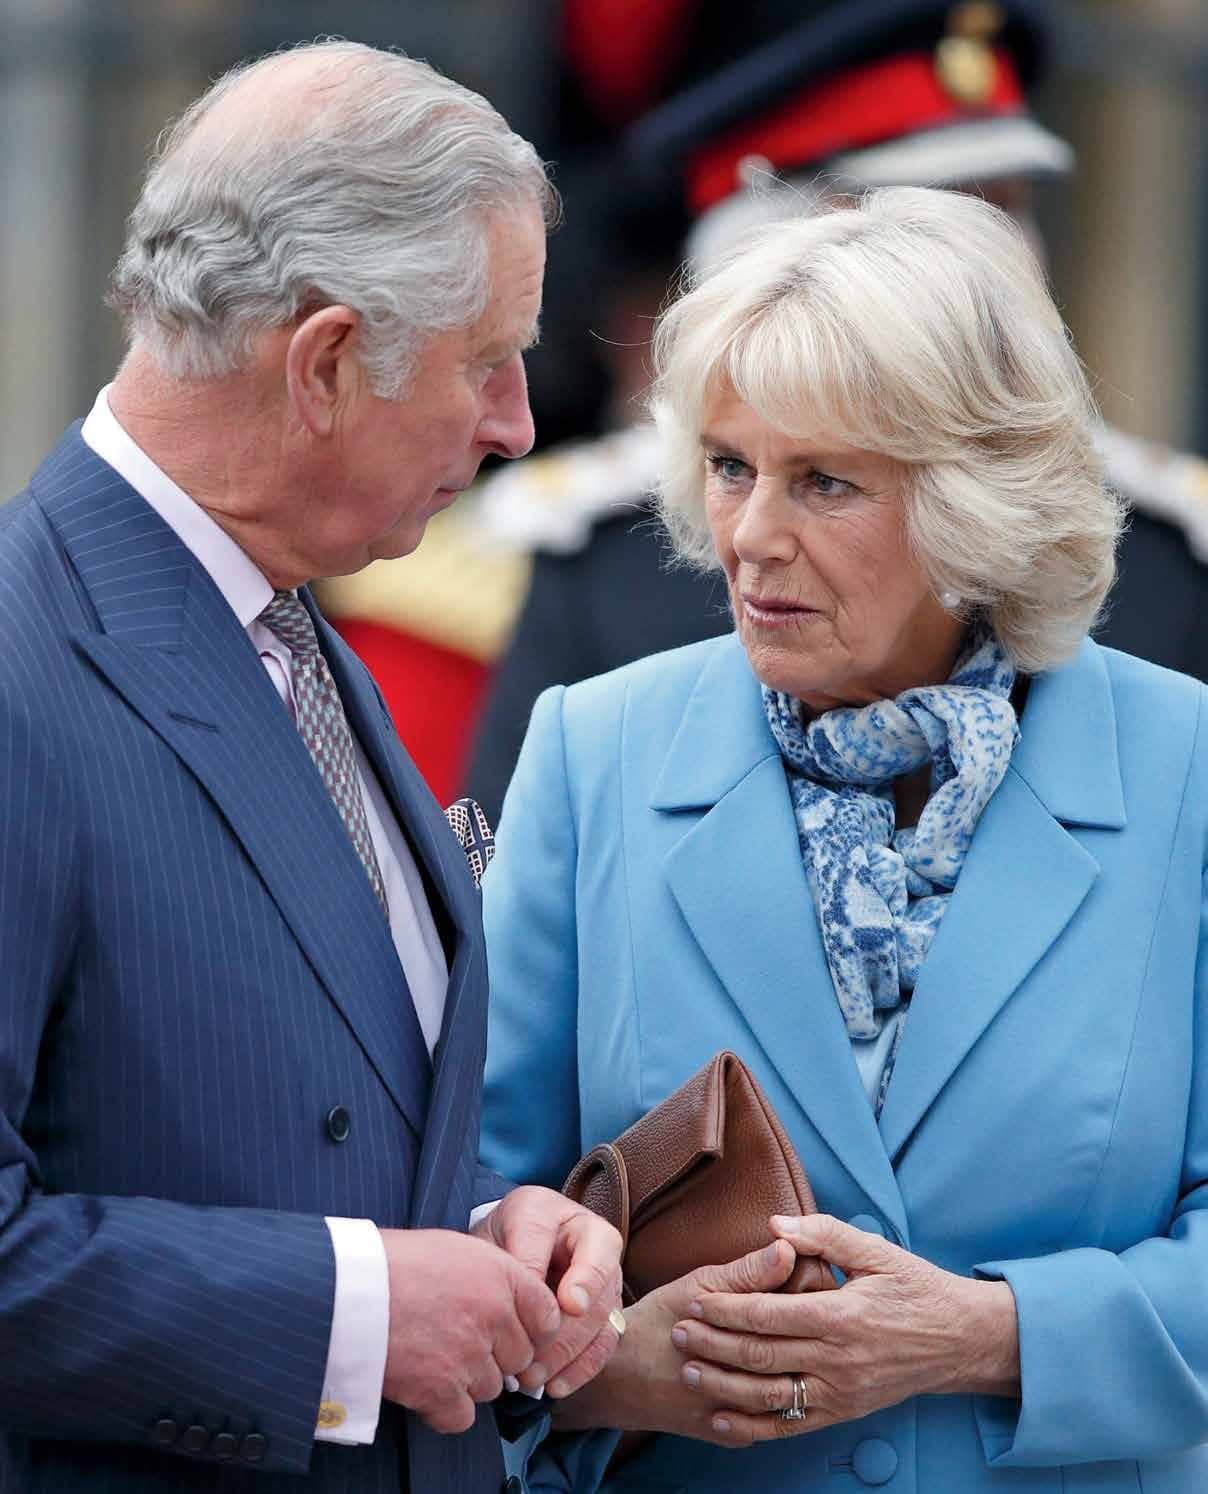 CAMILLA'S BETRAYAL EXPOSED! WHAT THE ROYAL FAMILY NEVER SAW COMING